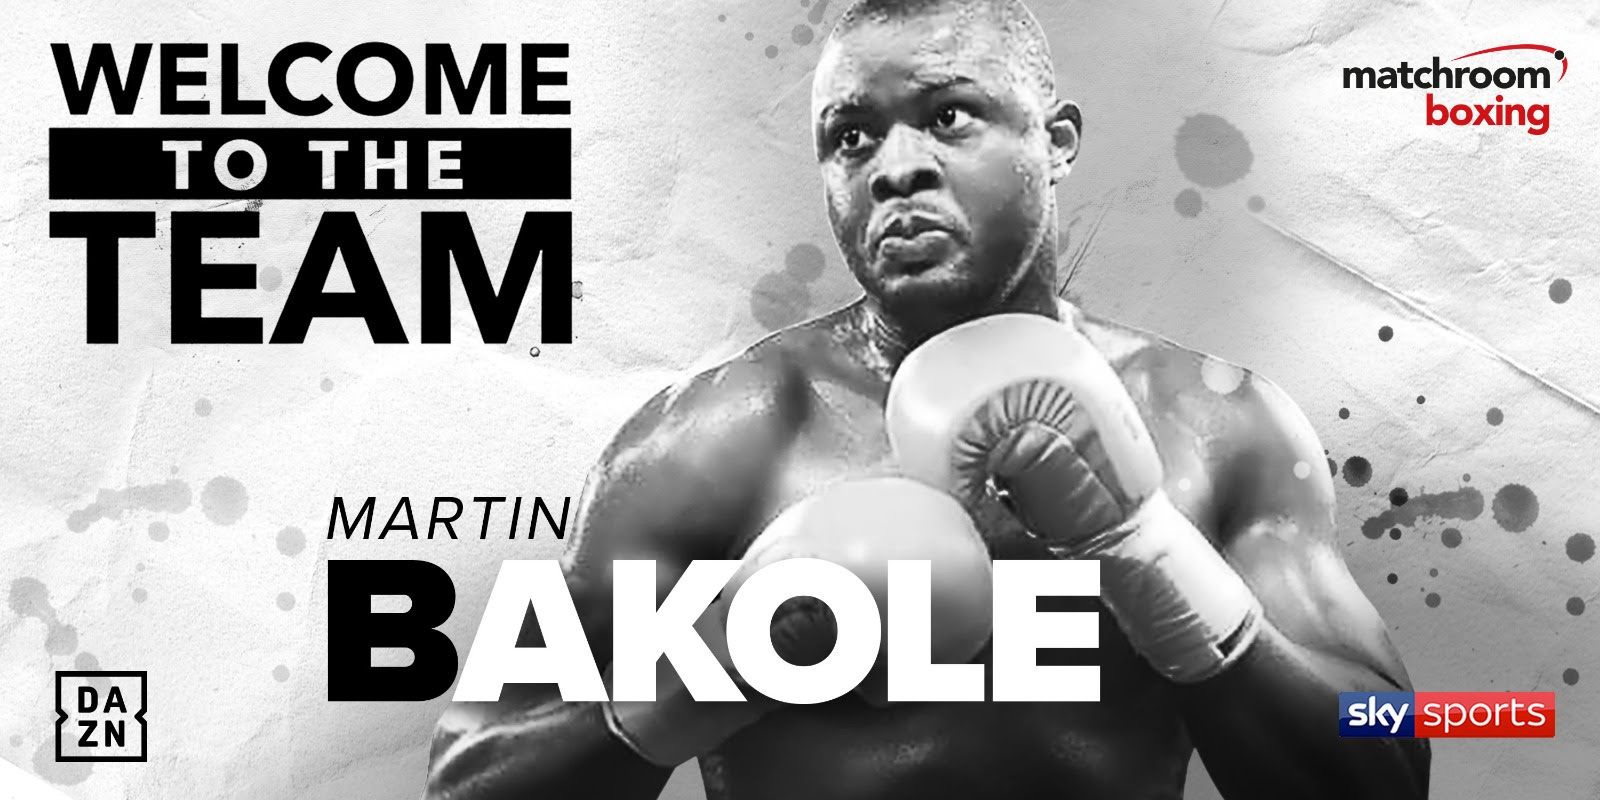 Martin Bakole Signs Promotional Deal With Matchroom Boxing